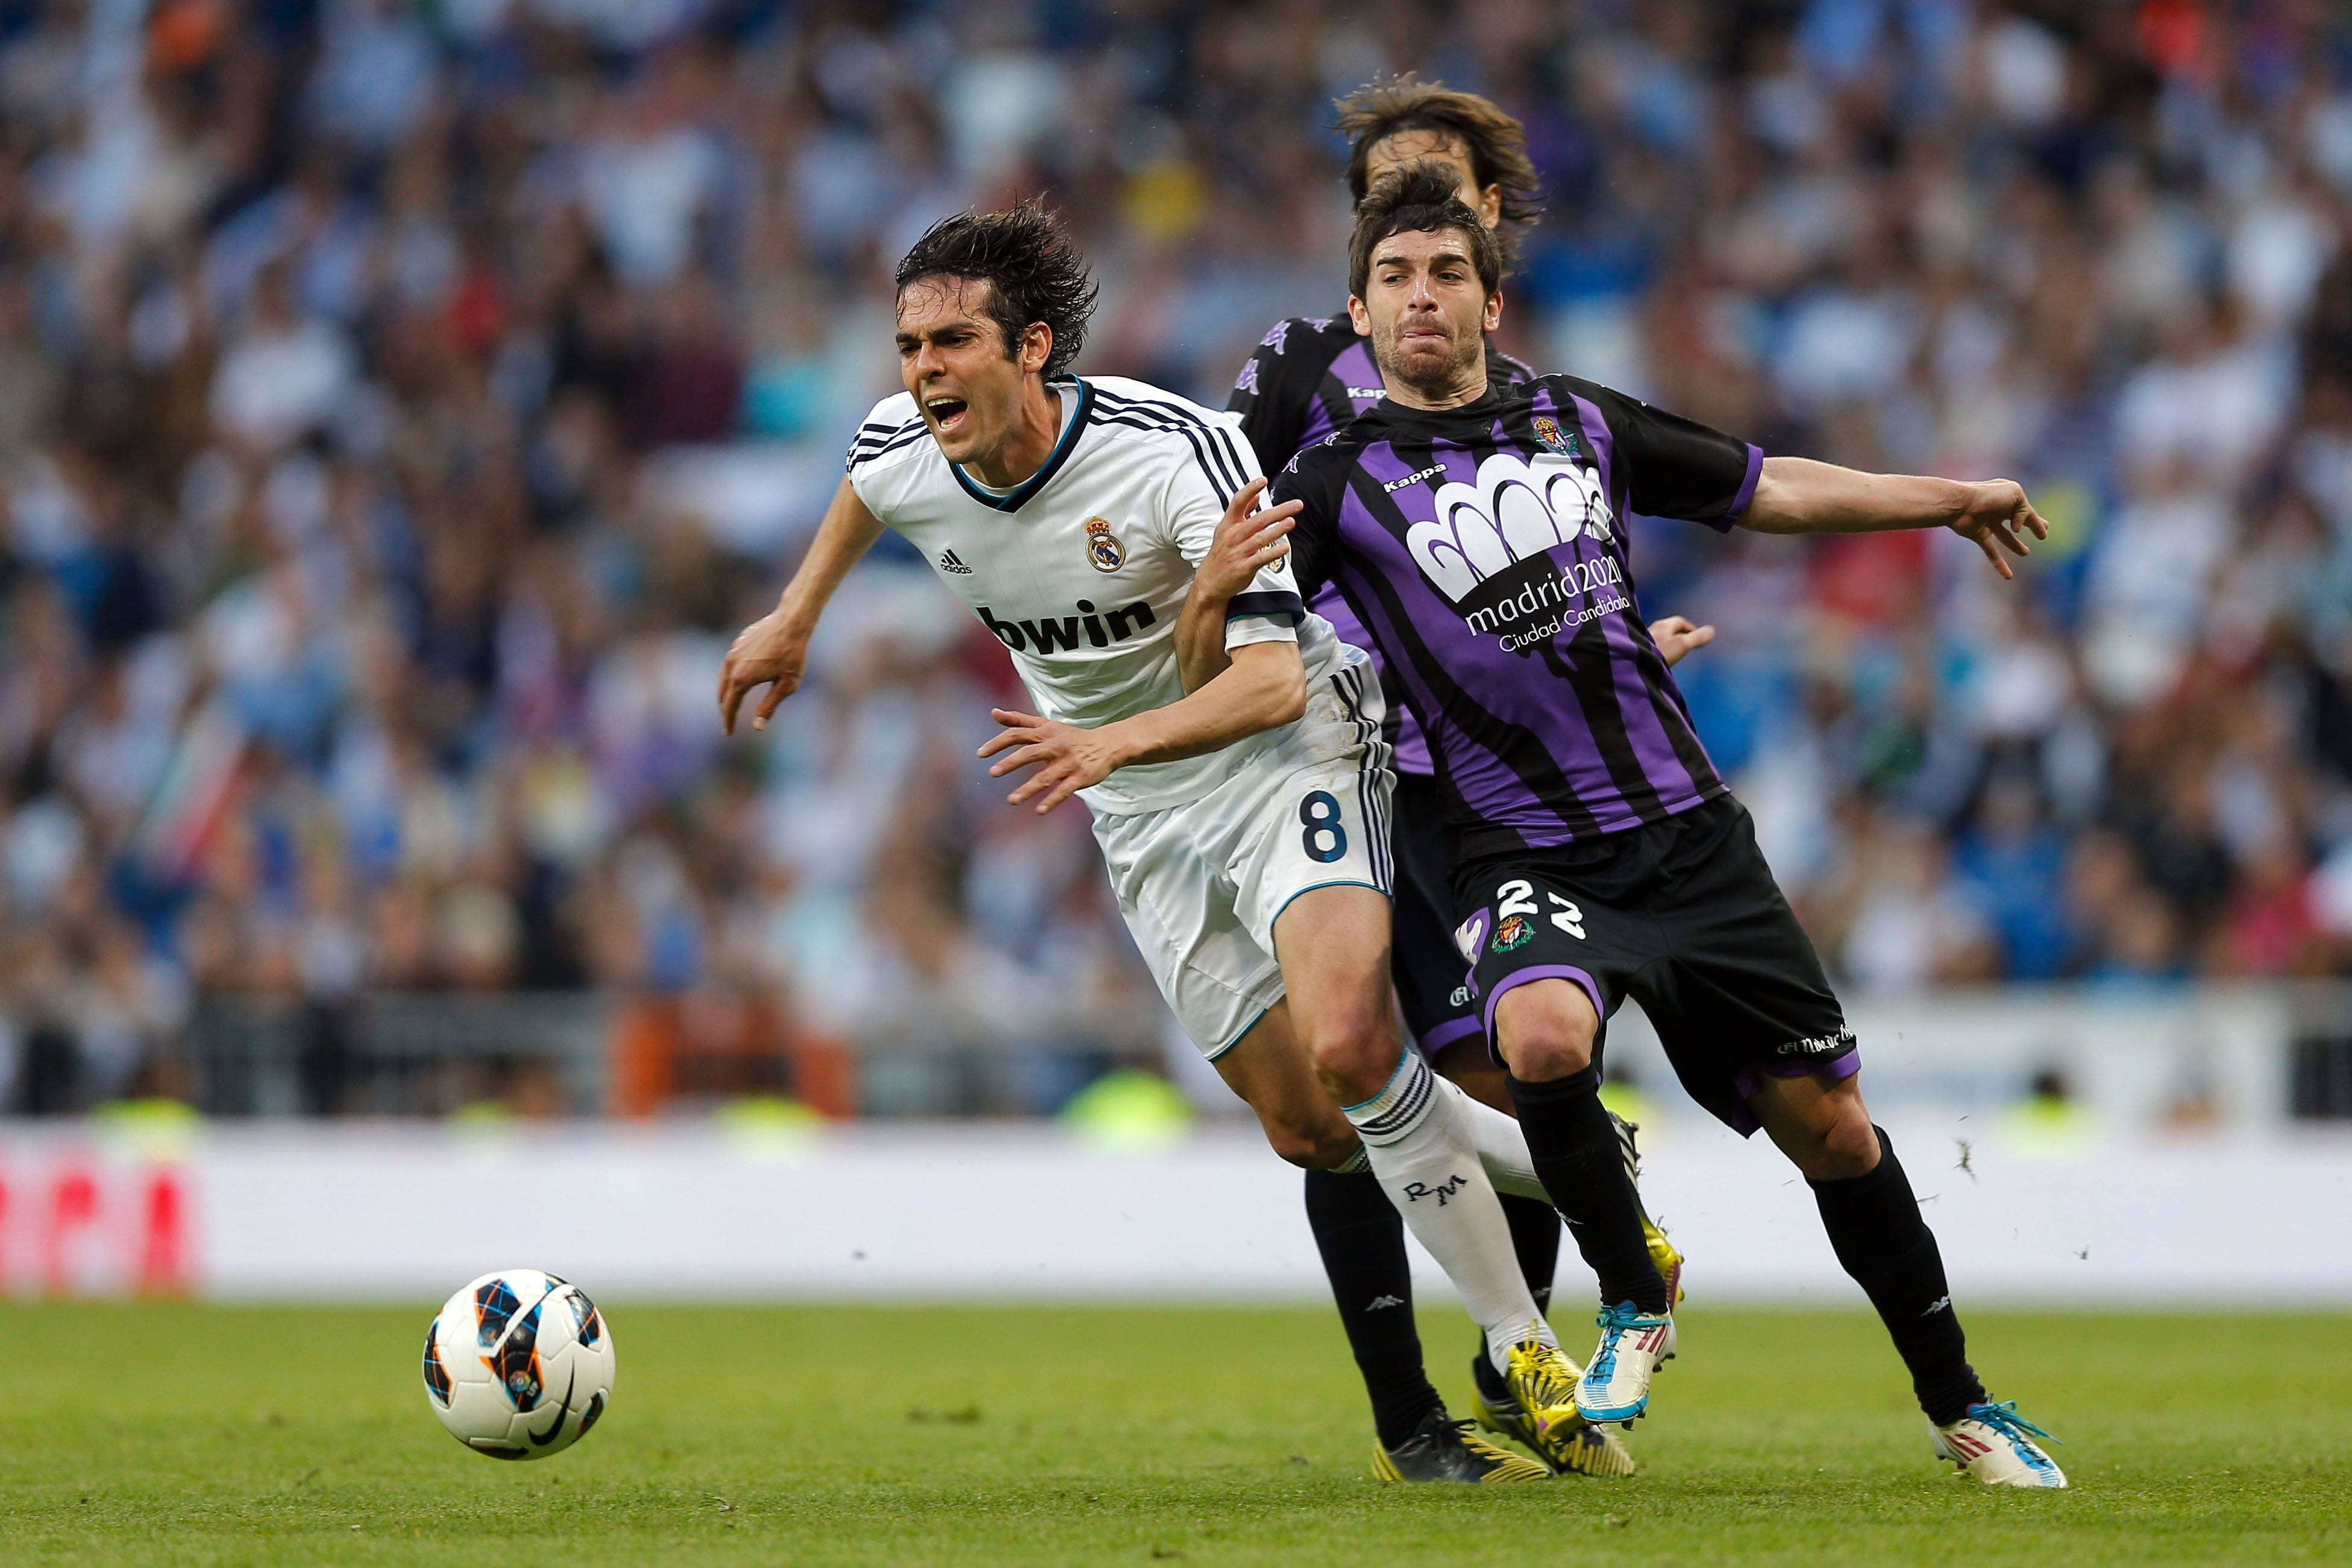 Real Madrid's Kaka from Brazil, left, duels for the ball with Valladolid's Victor Perez in a Spanish La Liga match. The Chicago Fire has signed Perez, a midfielder, team officials said Friday.